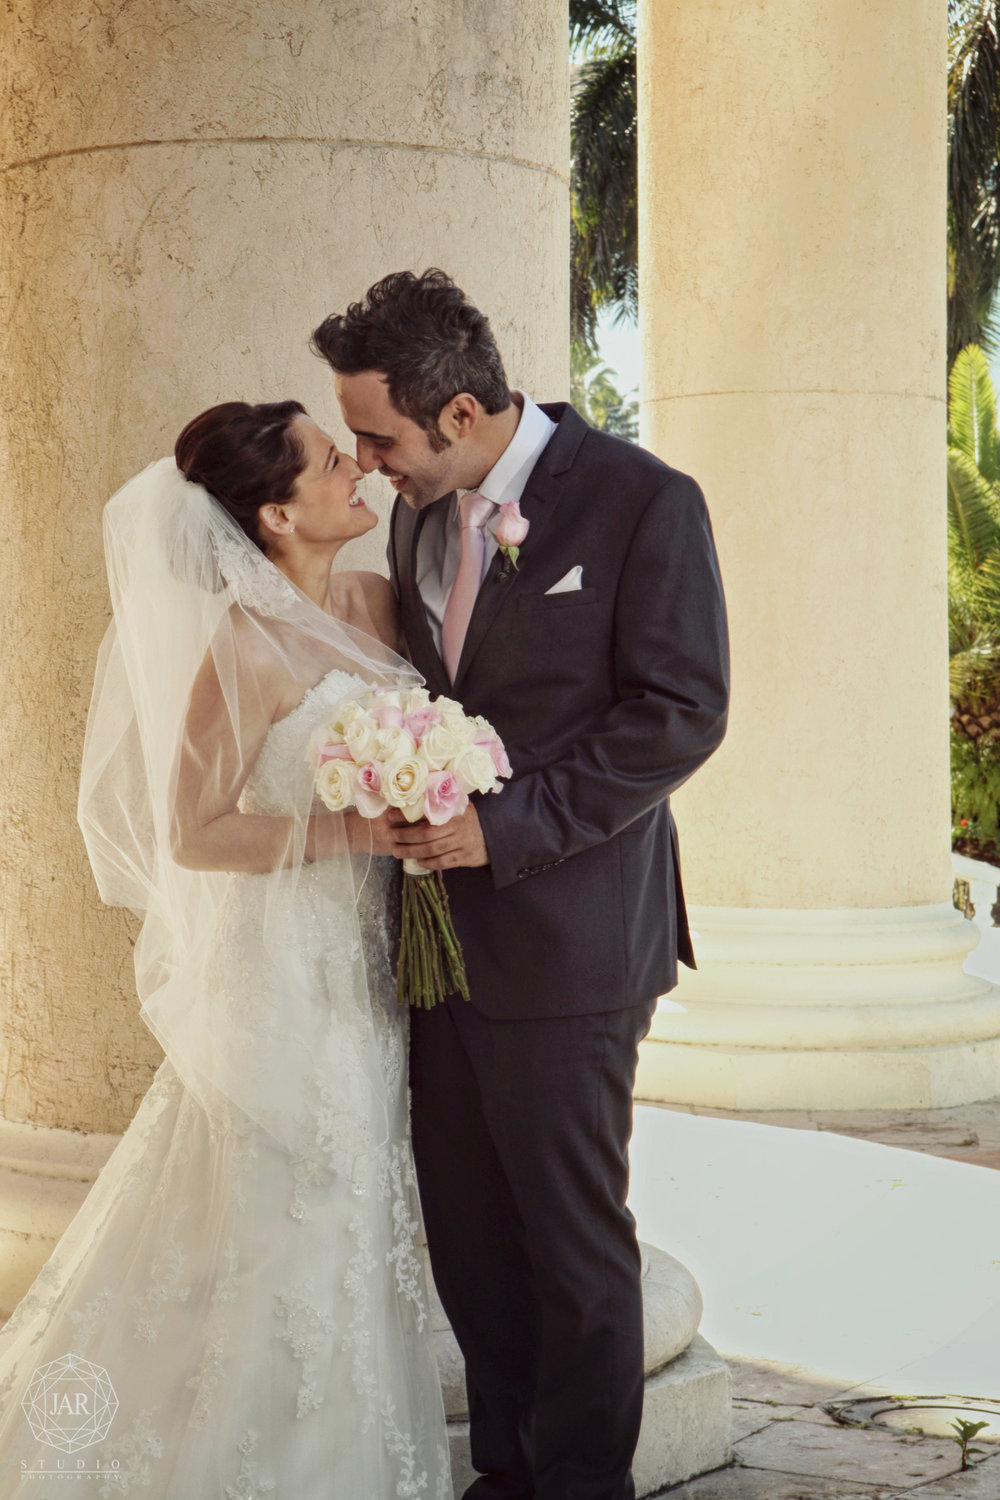 12-orlando-jewish-wedding-photography-jarstudio.JPG